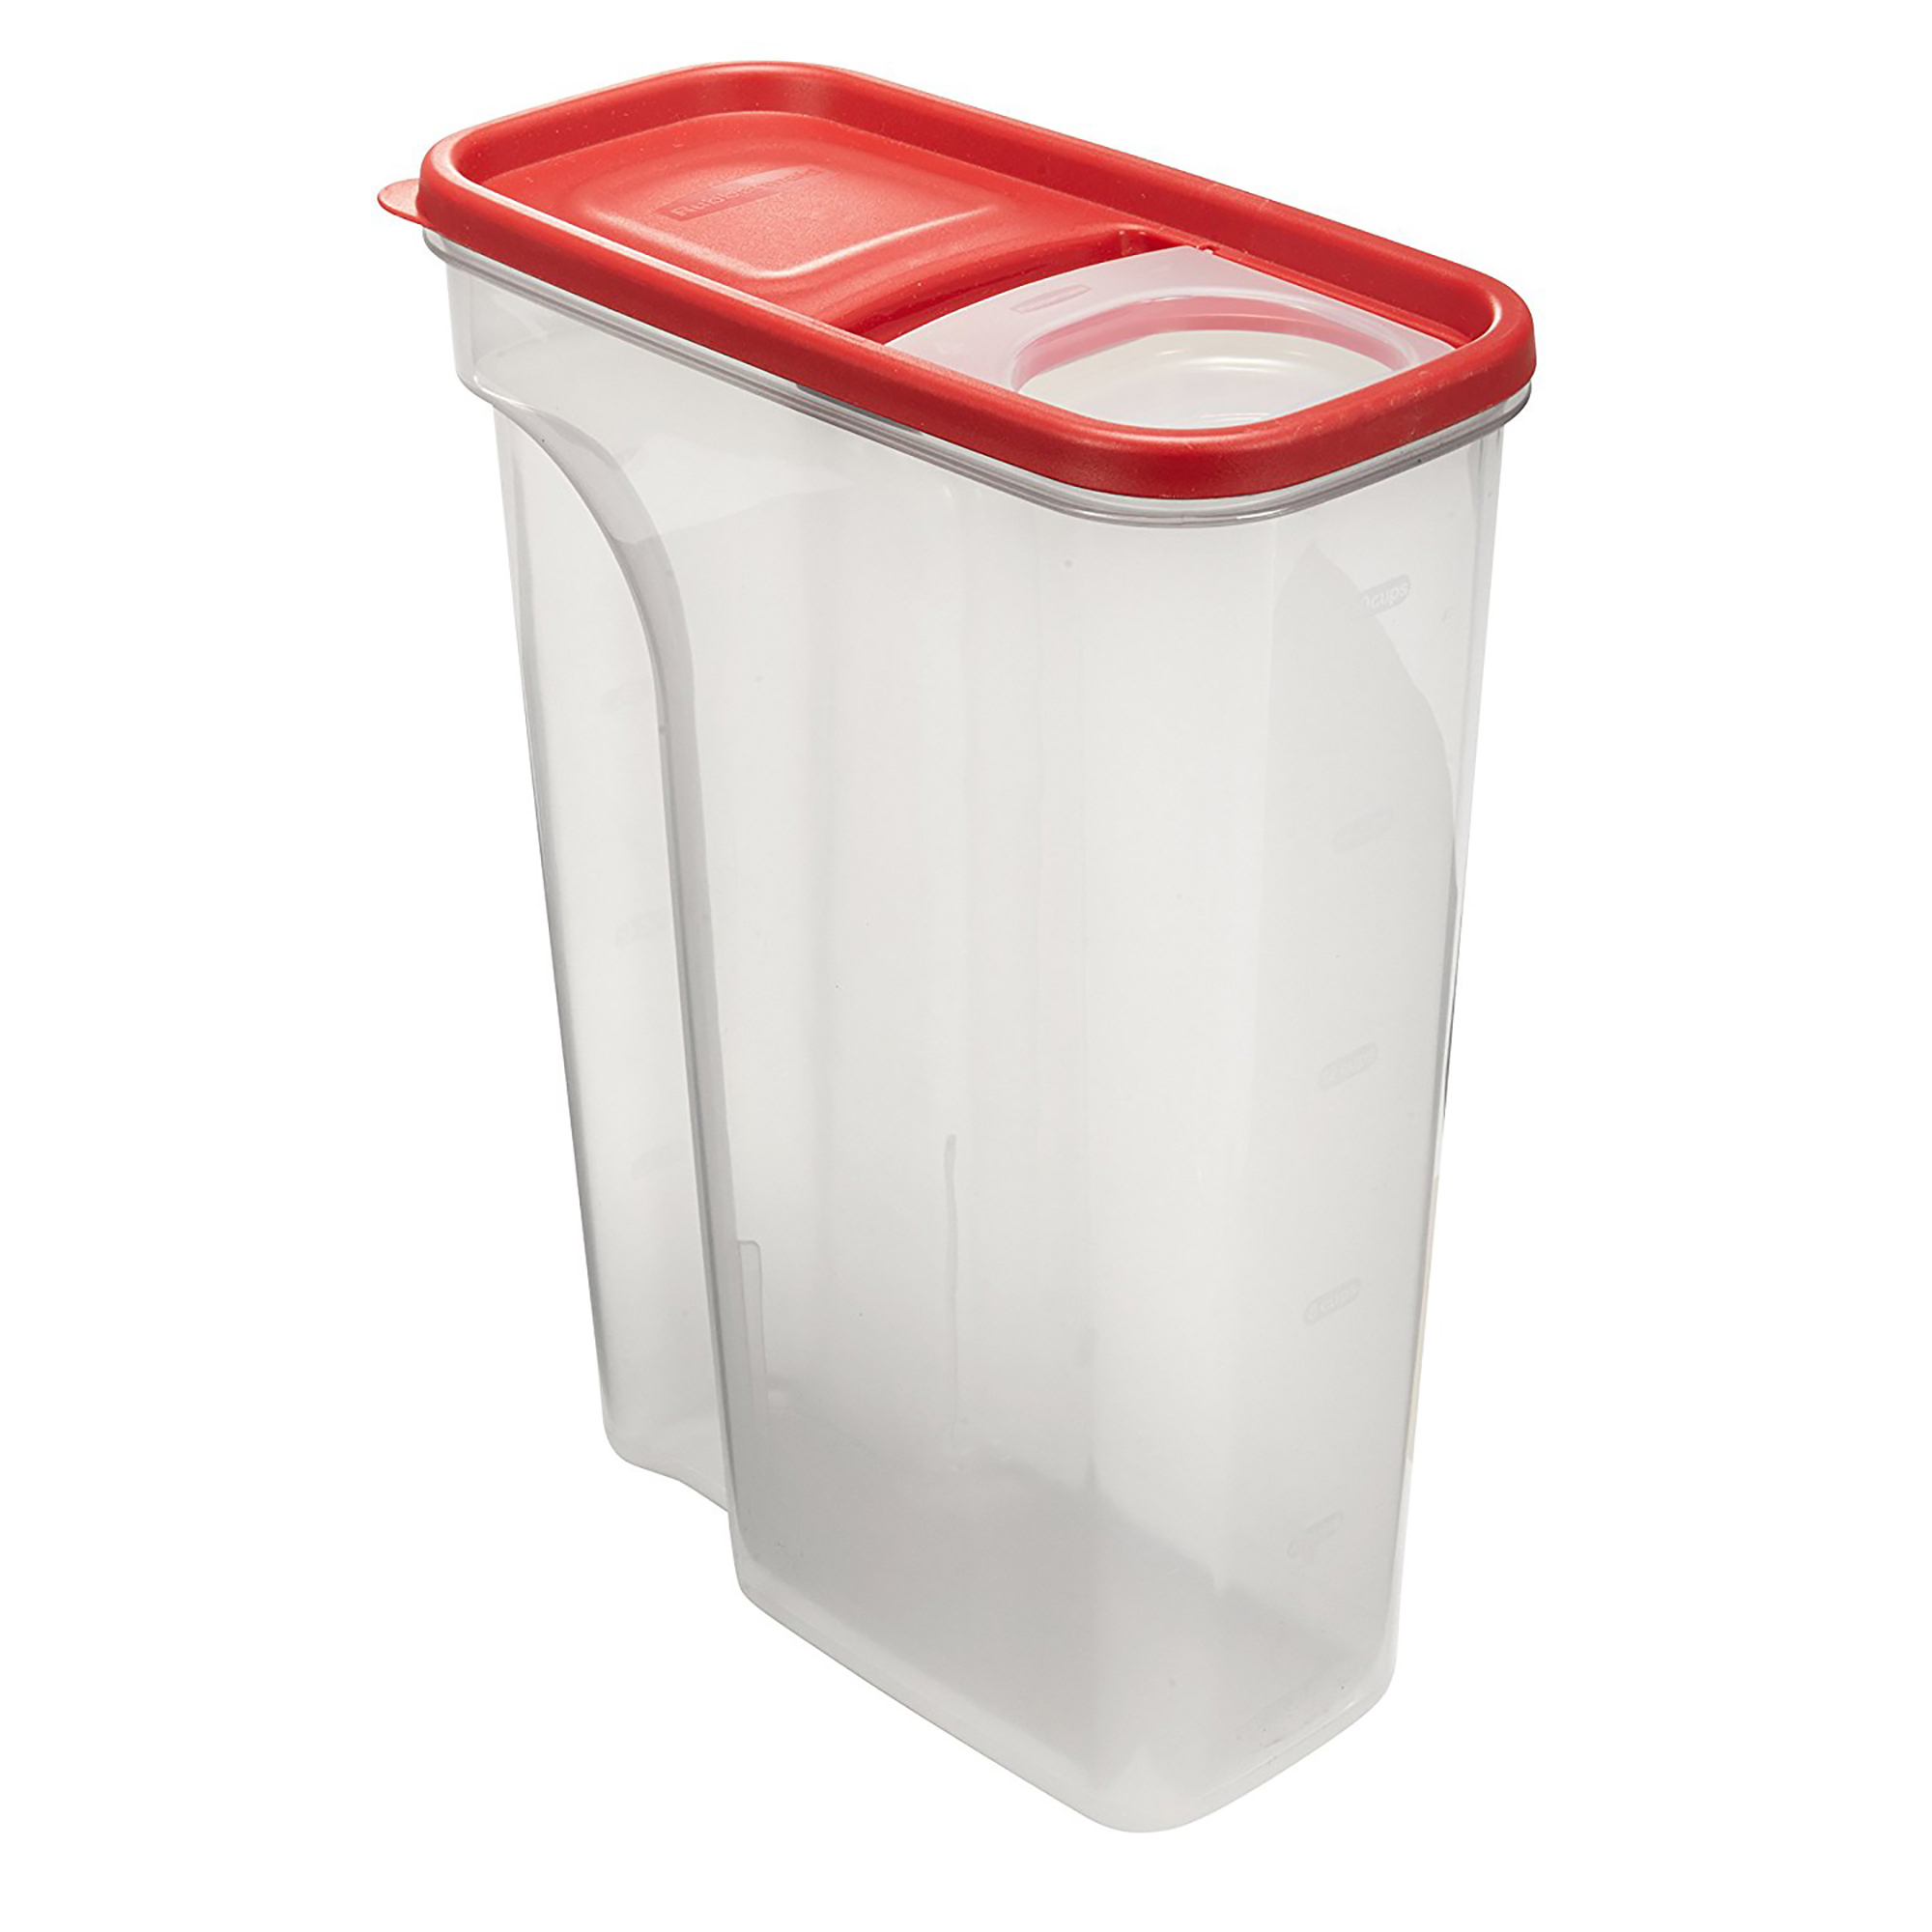 Etonnant Rubbermaid Flip Top Cereal And Food Storage Container, 22 Cup/5.2 Liter,